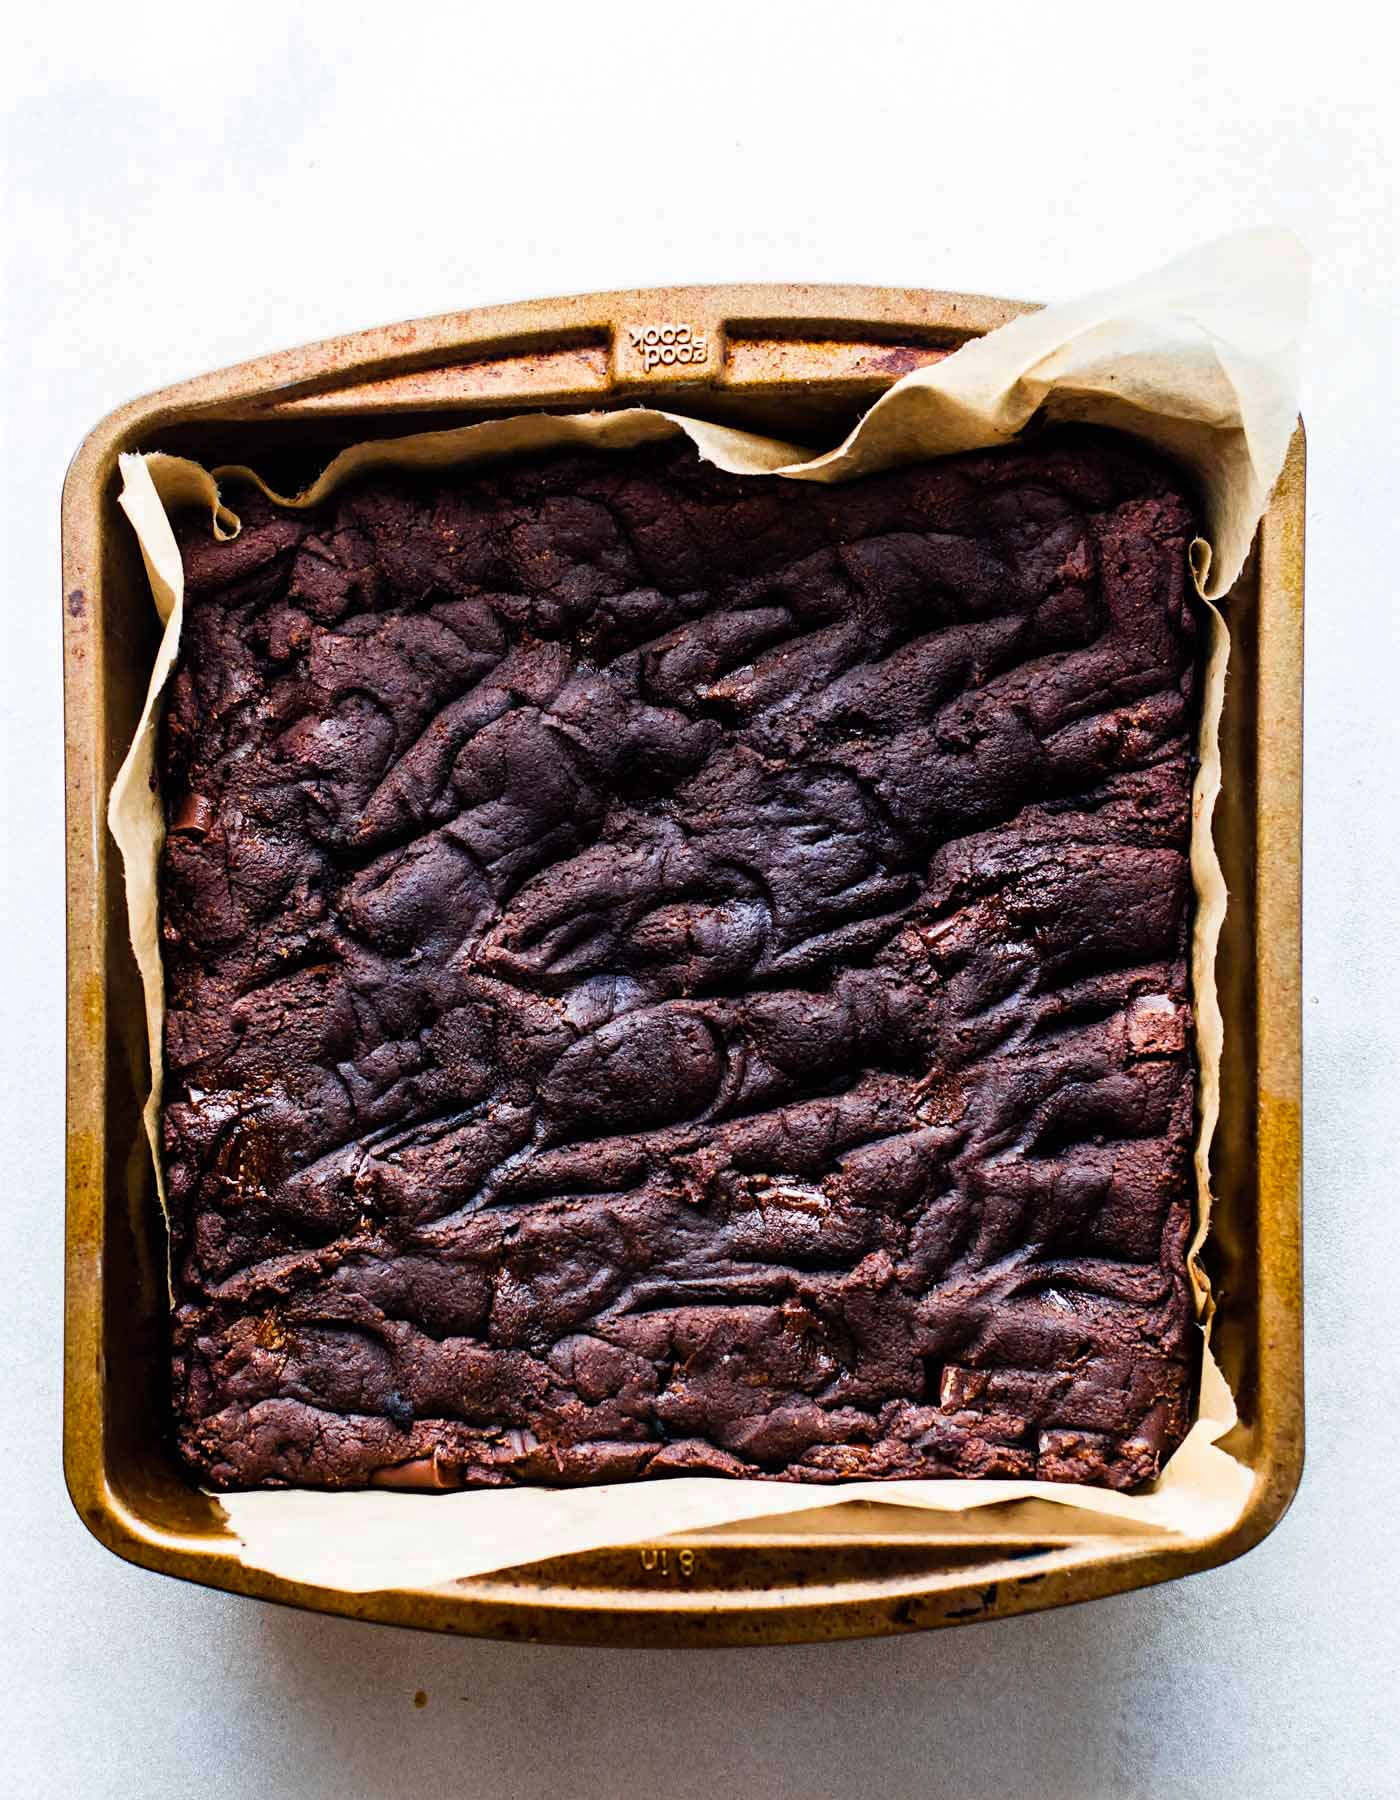 pan of paleo brownies with dark chocolate